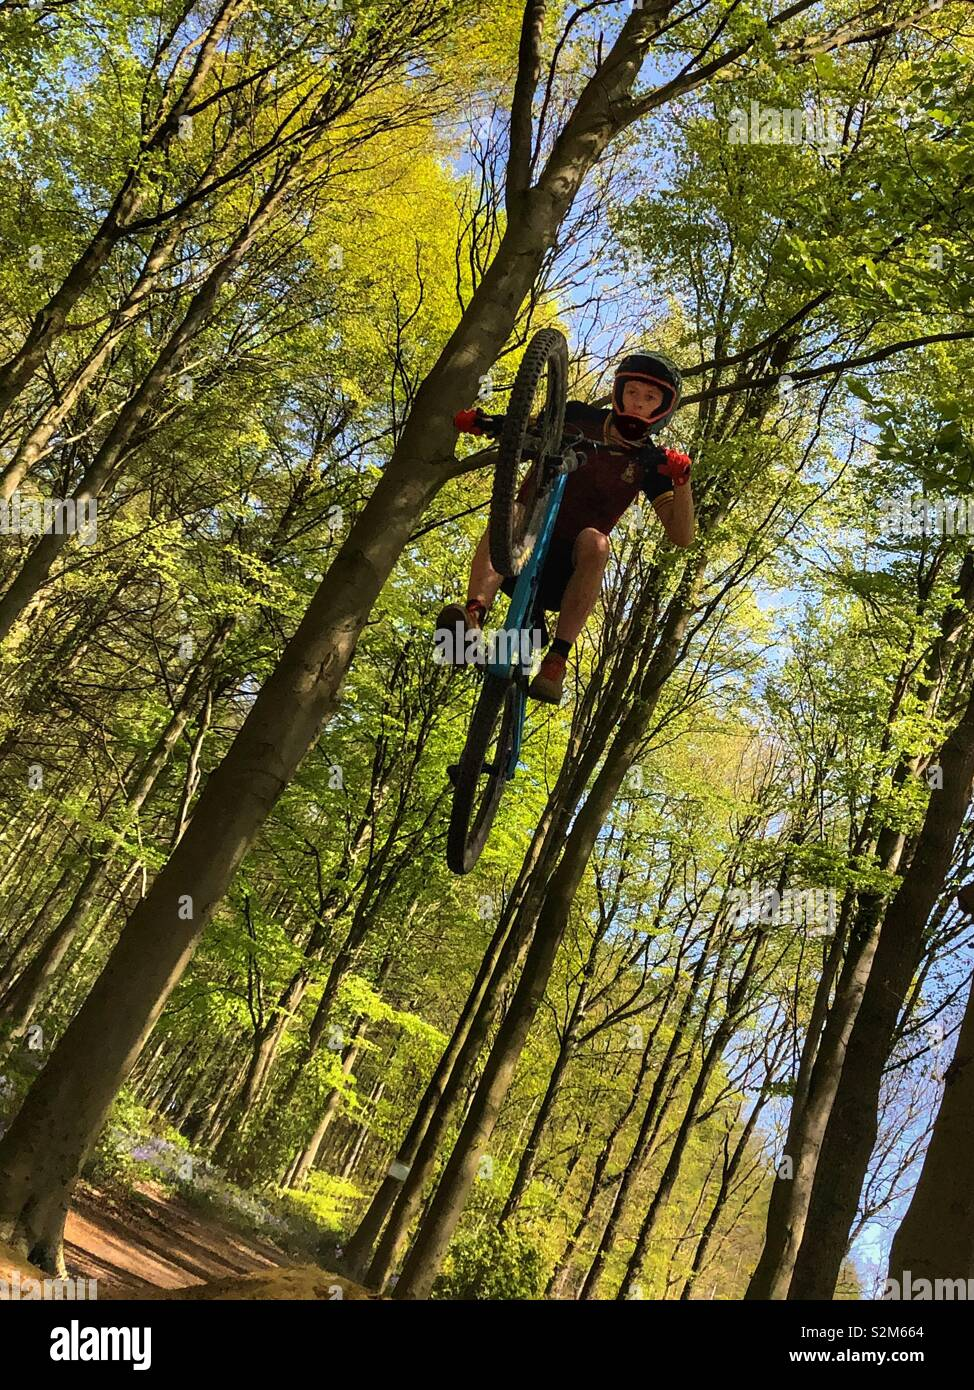 Mountain biker getting big air over a jump in the forest Stock Photo